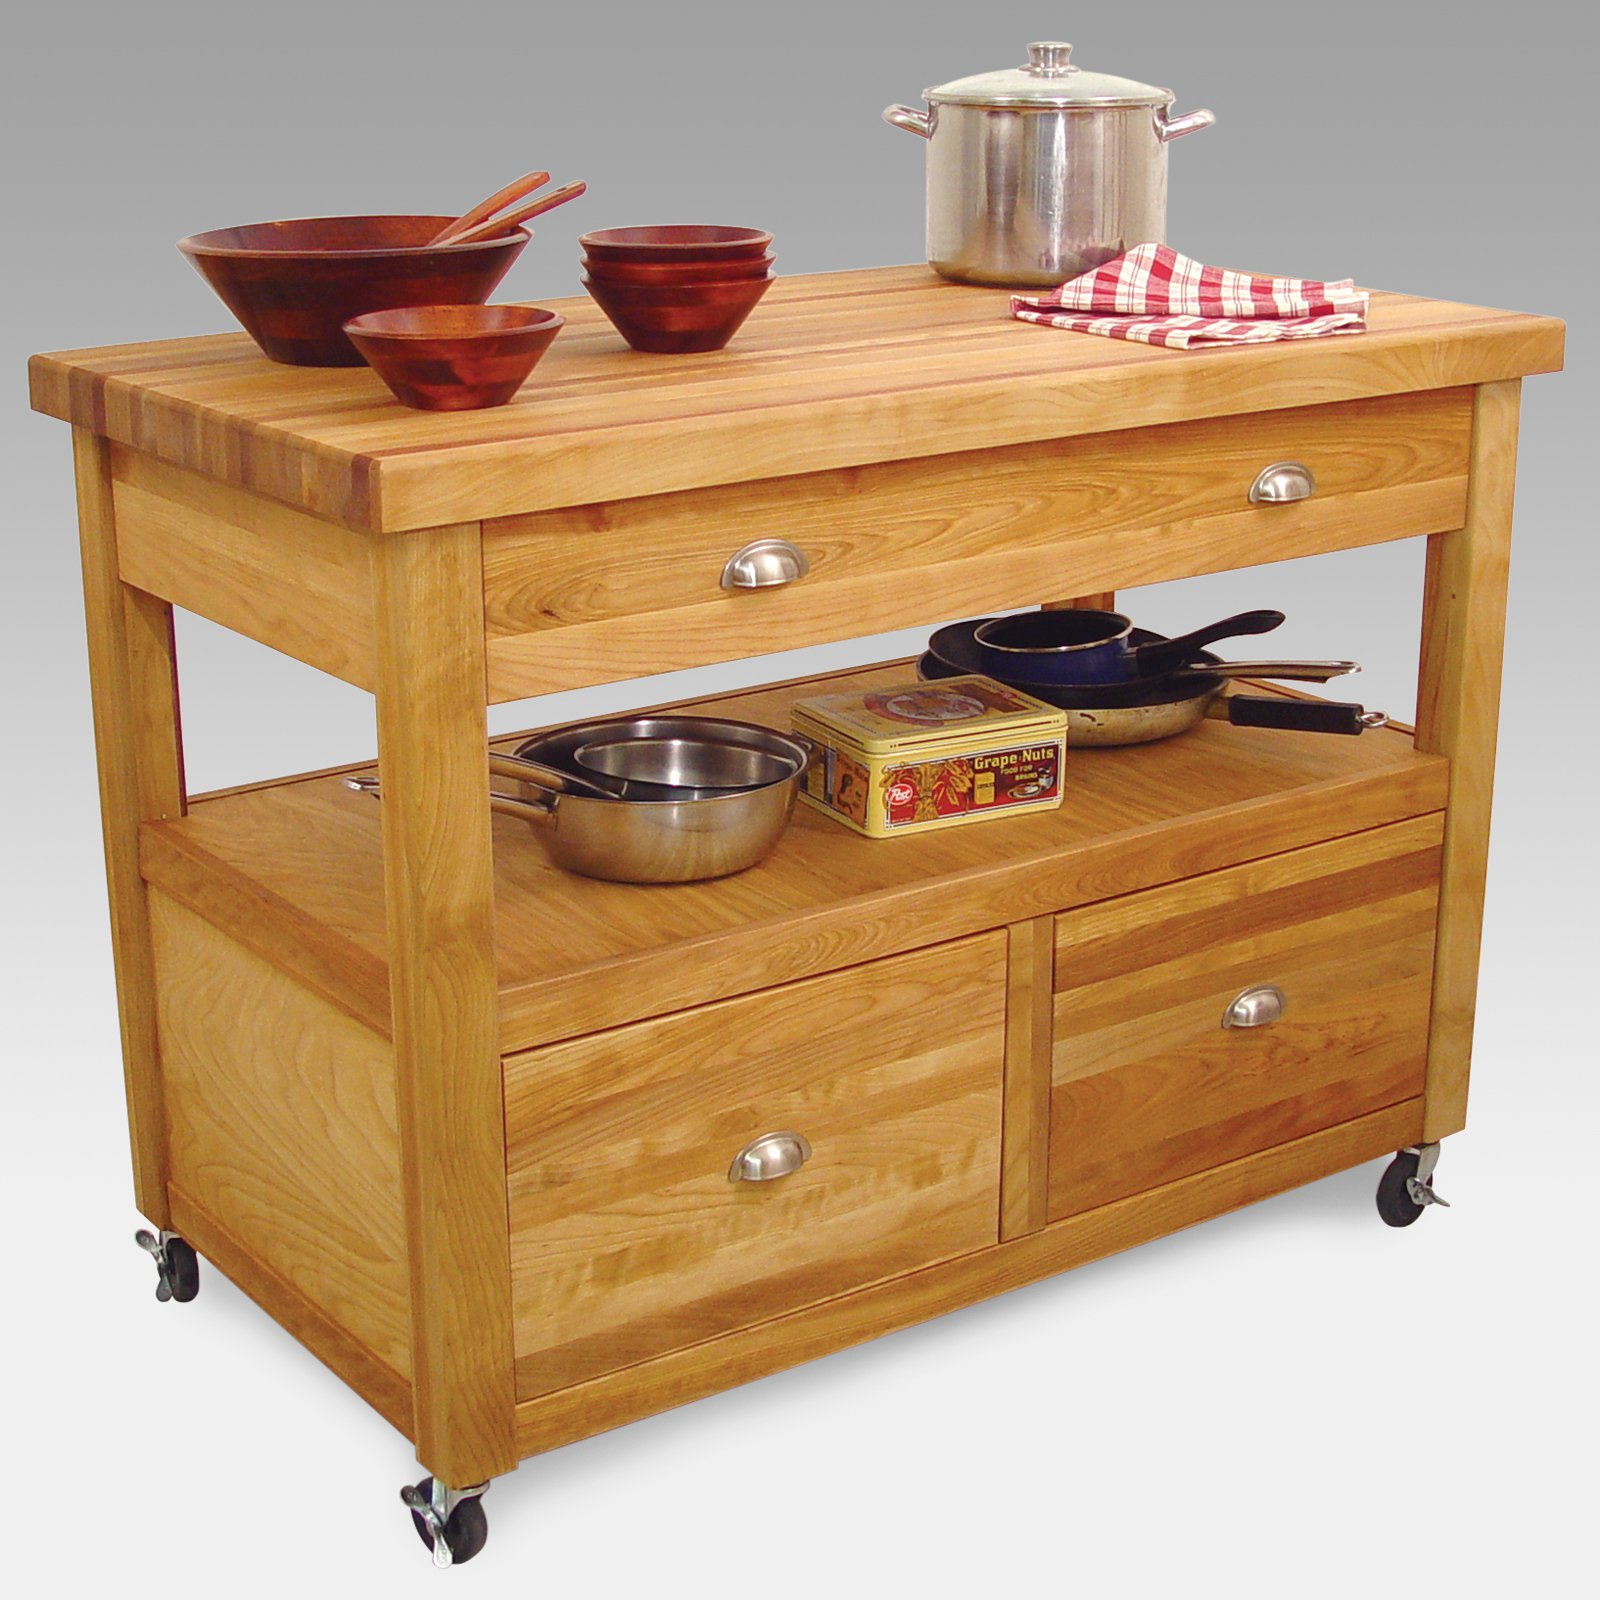 Grand Americana Workcenter Kitchen Island